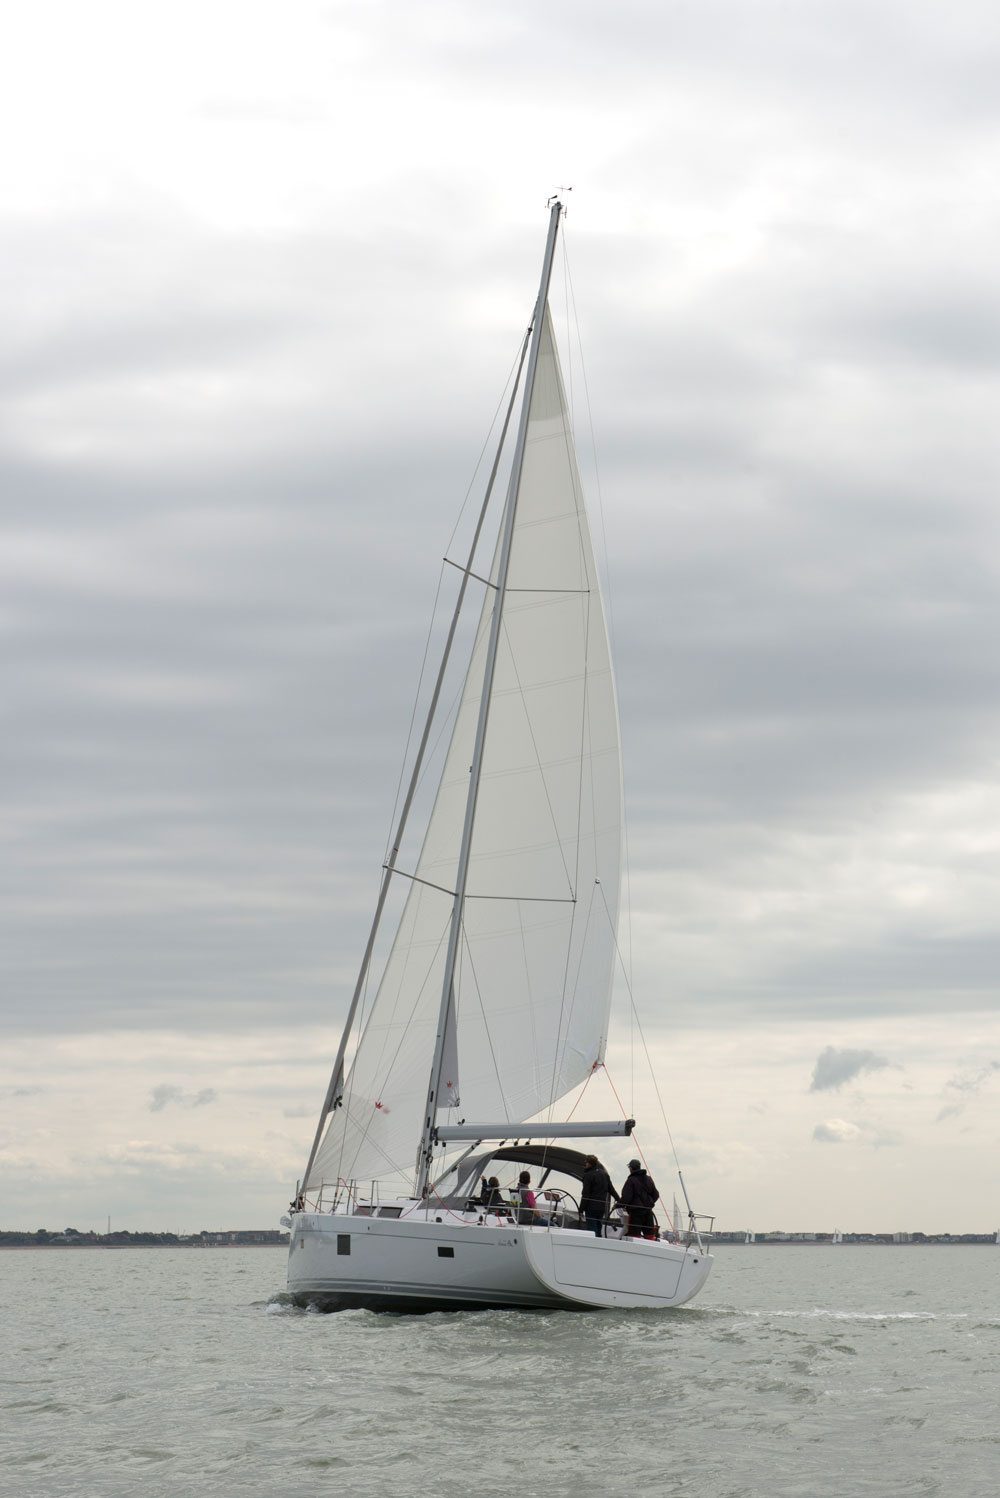 Elvstrom Sails Blue Water Runner reaching mode